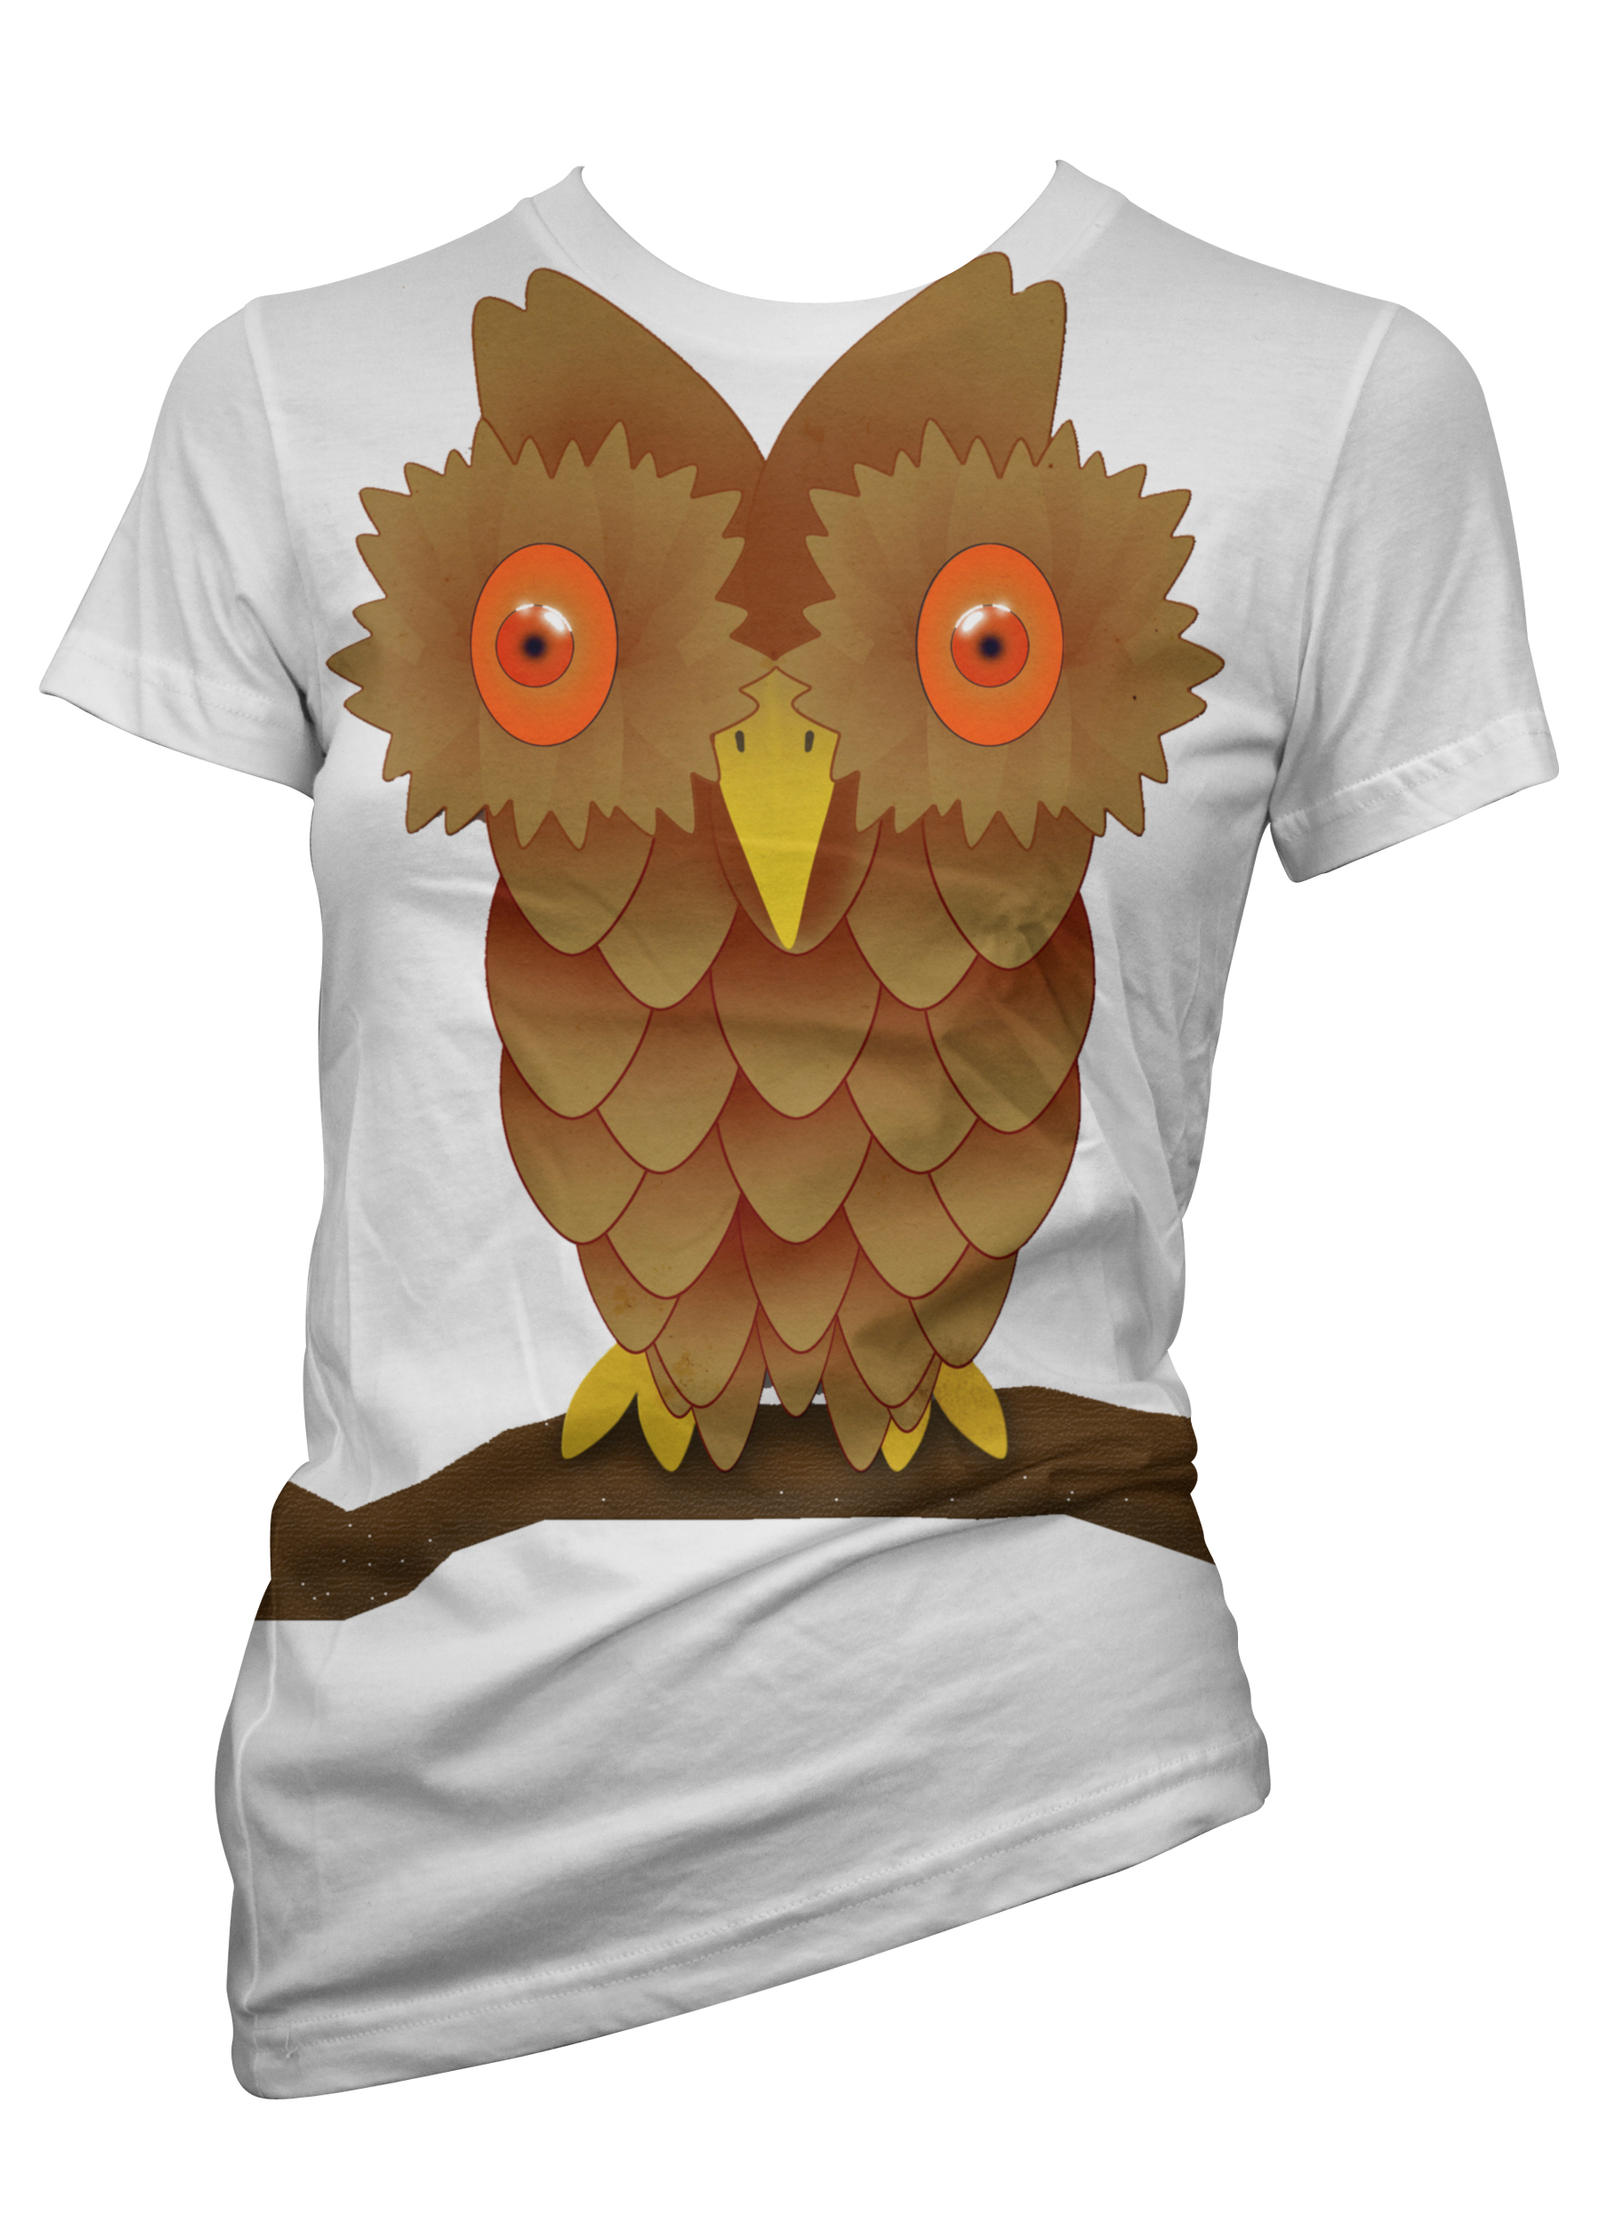 T shirt design owl by shanegallagher on deviantart T shirt with owl design